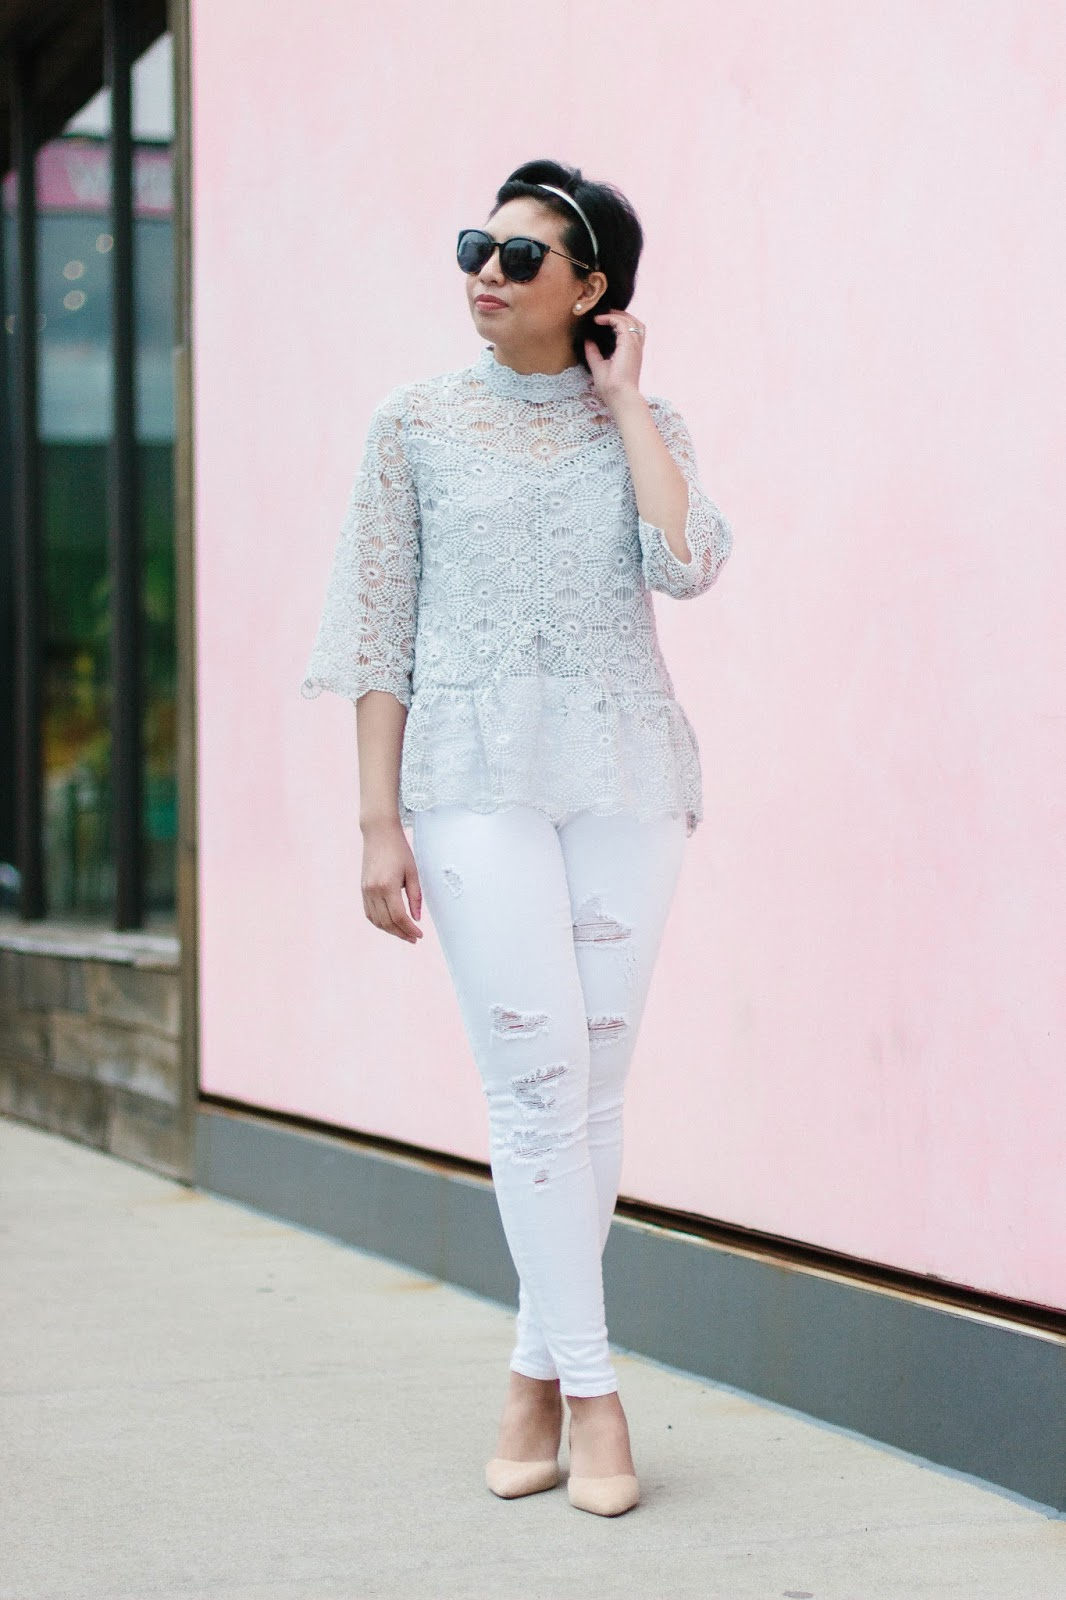 How wearing white distressed jeans and a lace top is perfect for a Spring outfit